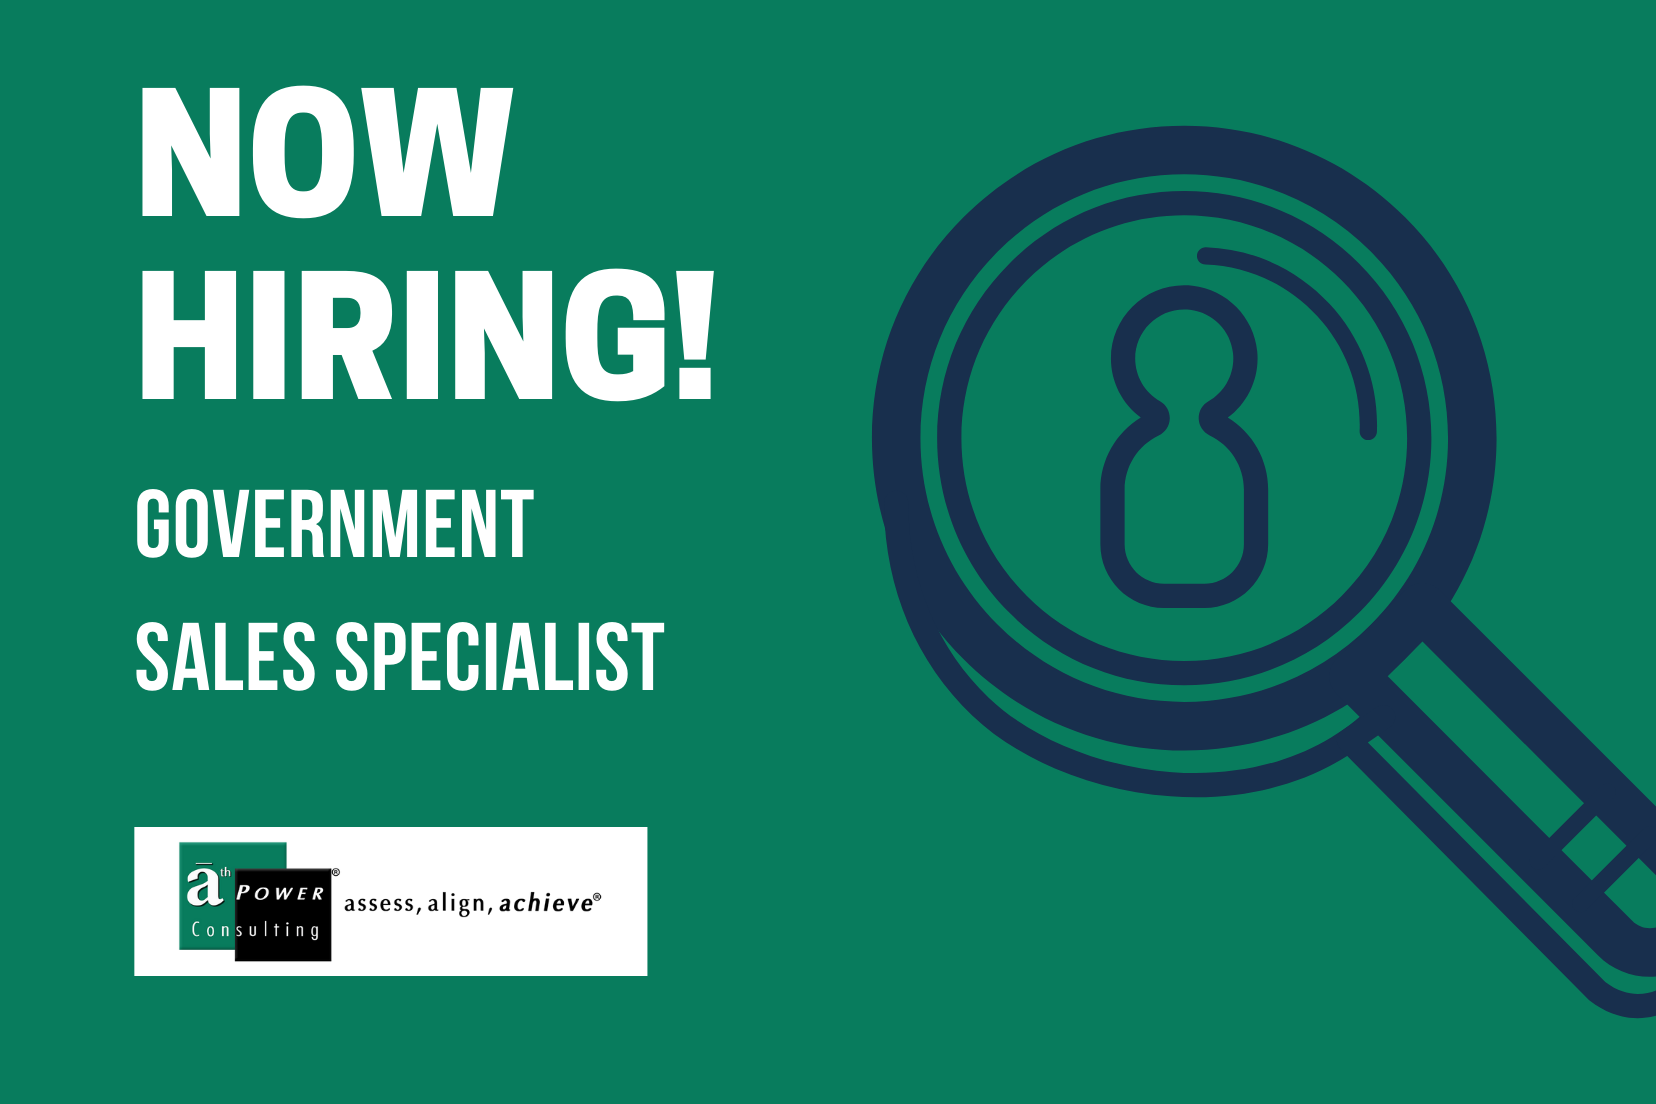 government sales specialist